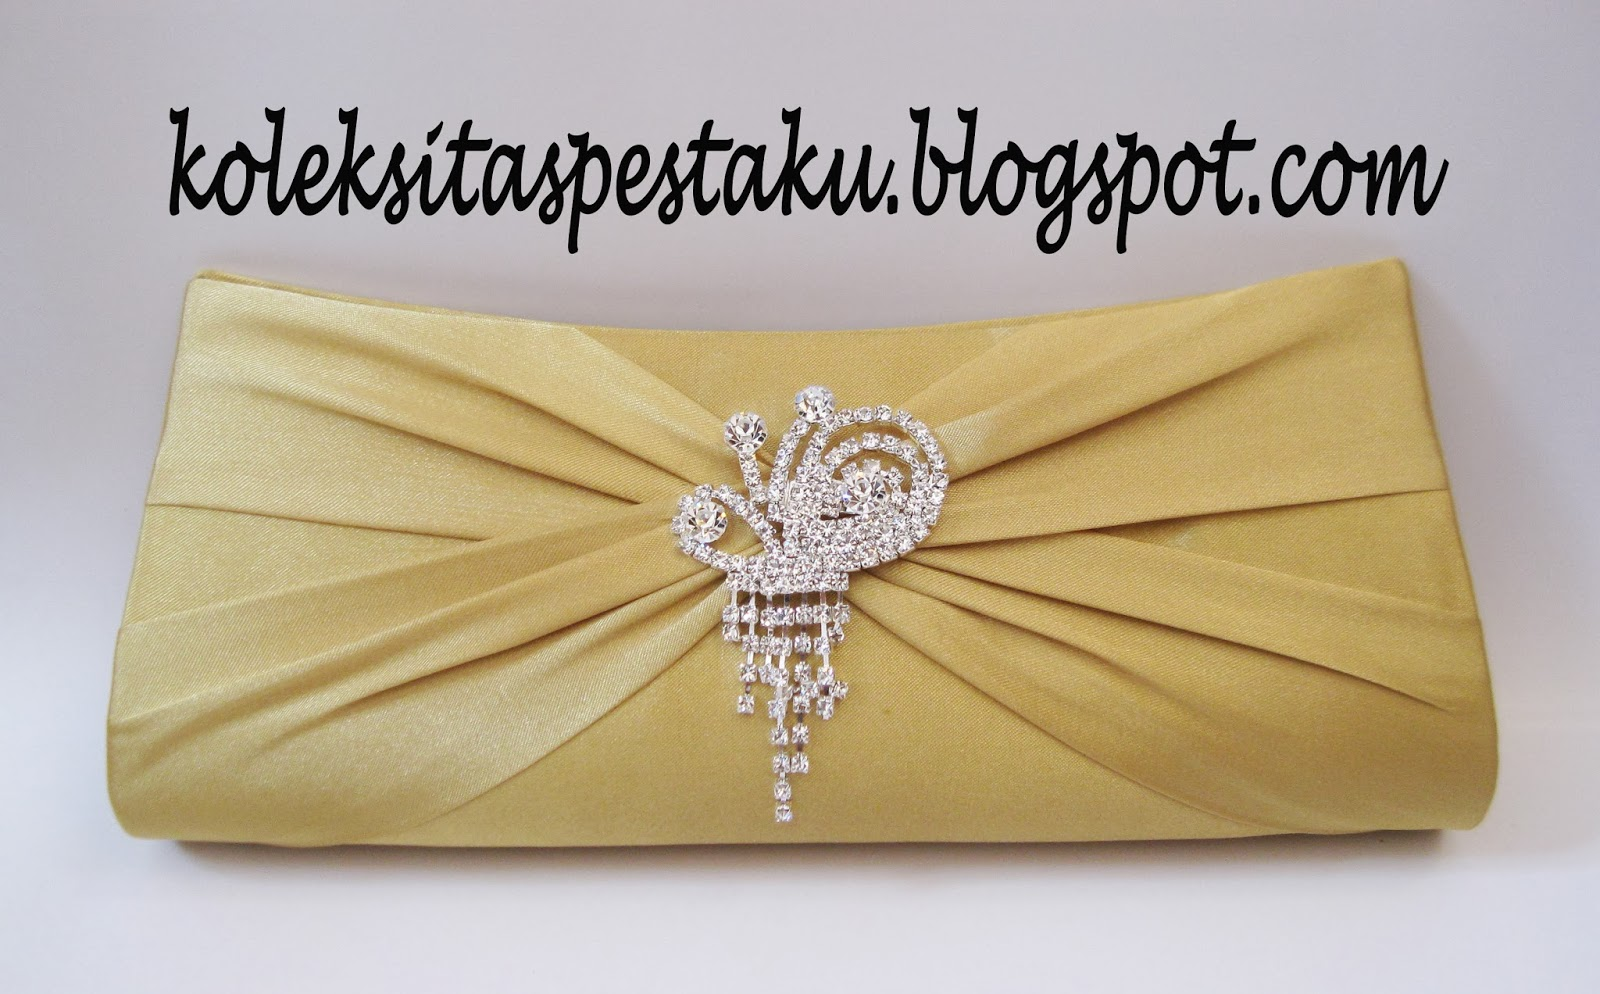 Tas Pesta Clutch Bag Gold Mewah Bross Silver